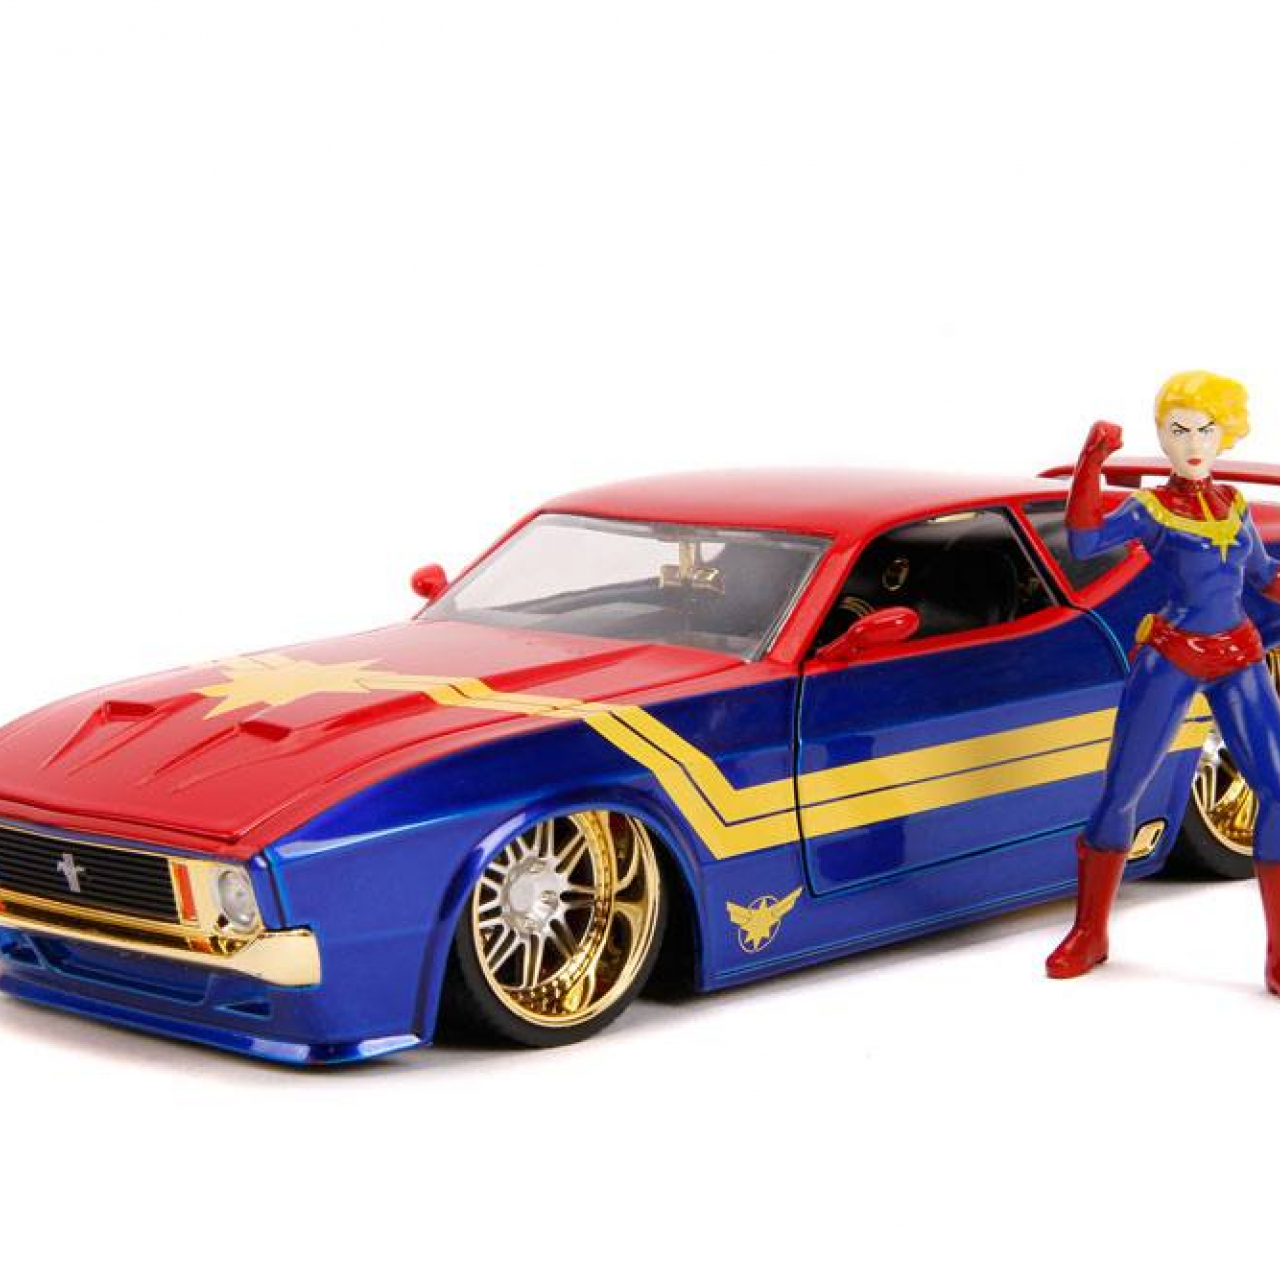 Marvel Hollywood Rides Diecast Model 1/24 1973 Ford Mustang Mach 1 with Captain Marvel Figure